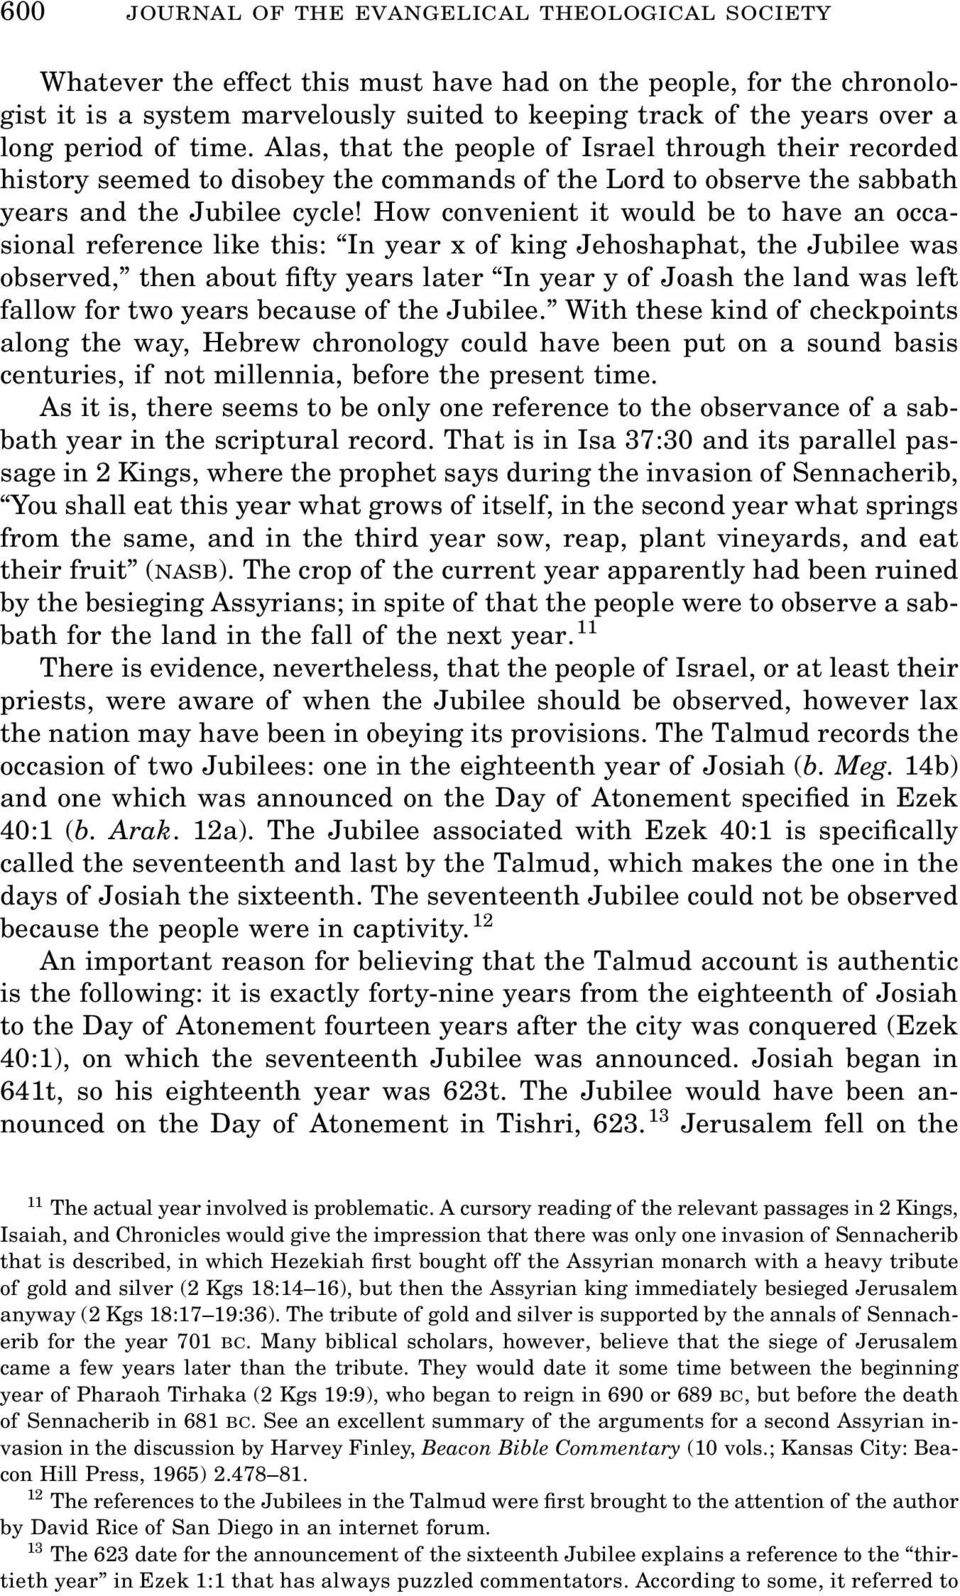 How convenient it would be to have an occasional reference like this: In year x of king Jehoshaphat, the Jubilee was observed, then about fifty years later In year y of Joash the land was left fallow